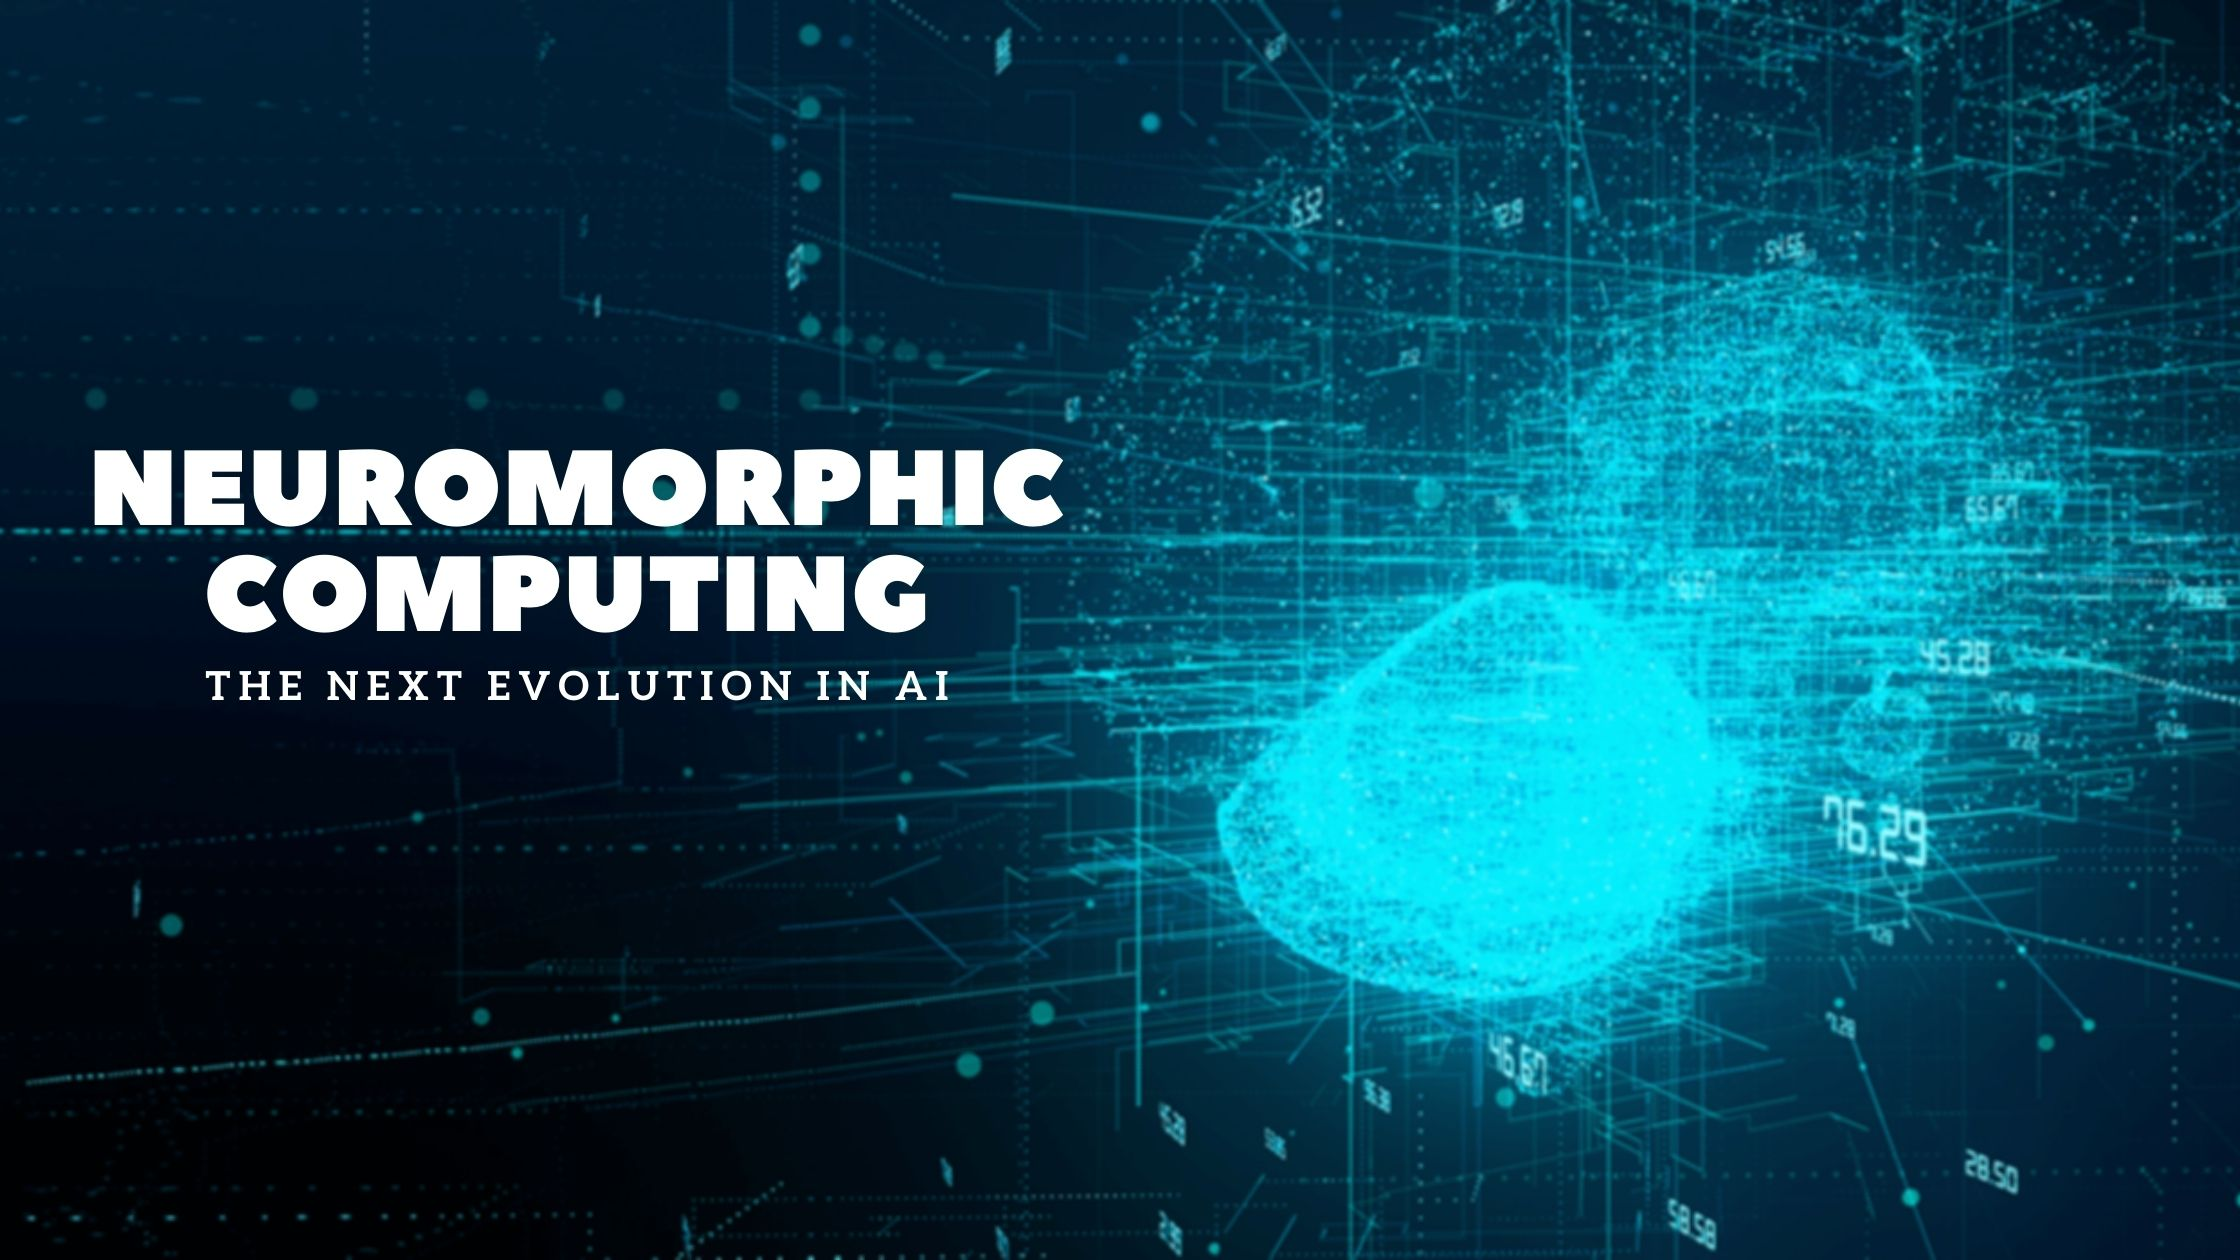 Neuromorphic computing could solve the tech industry's looming crisis